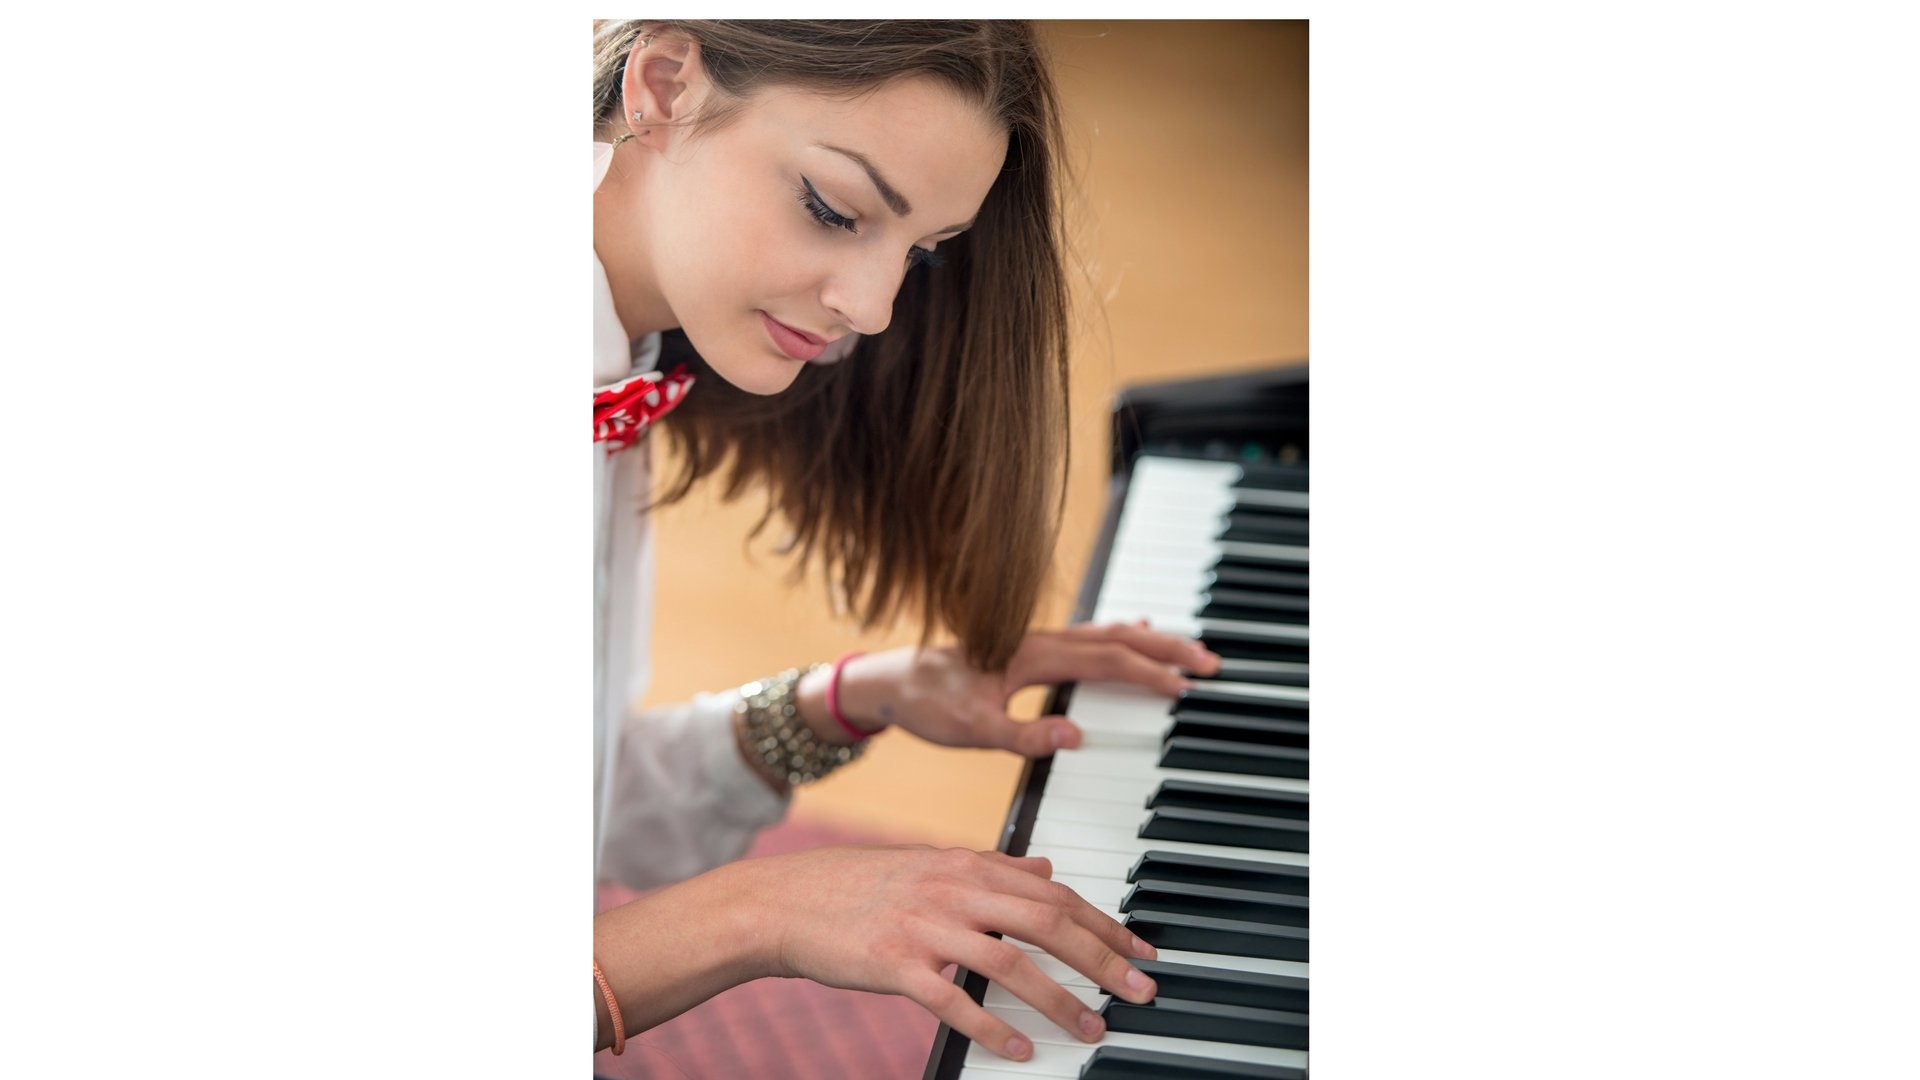 piano lessons, piano lessons for kids, piano lesson, piano lessons for beginners, beginner piano lessons